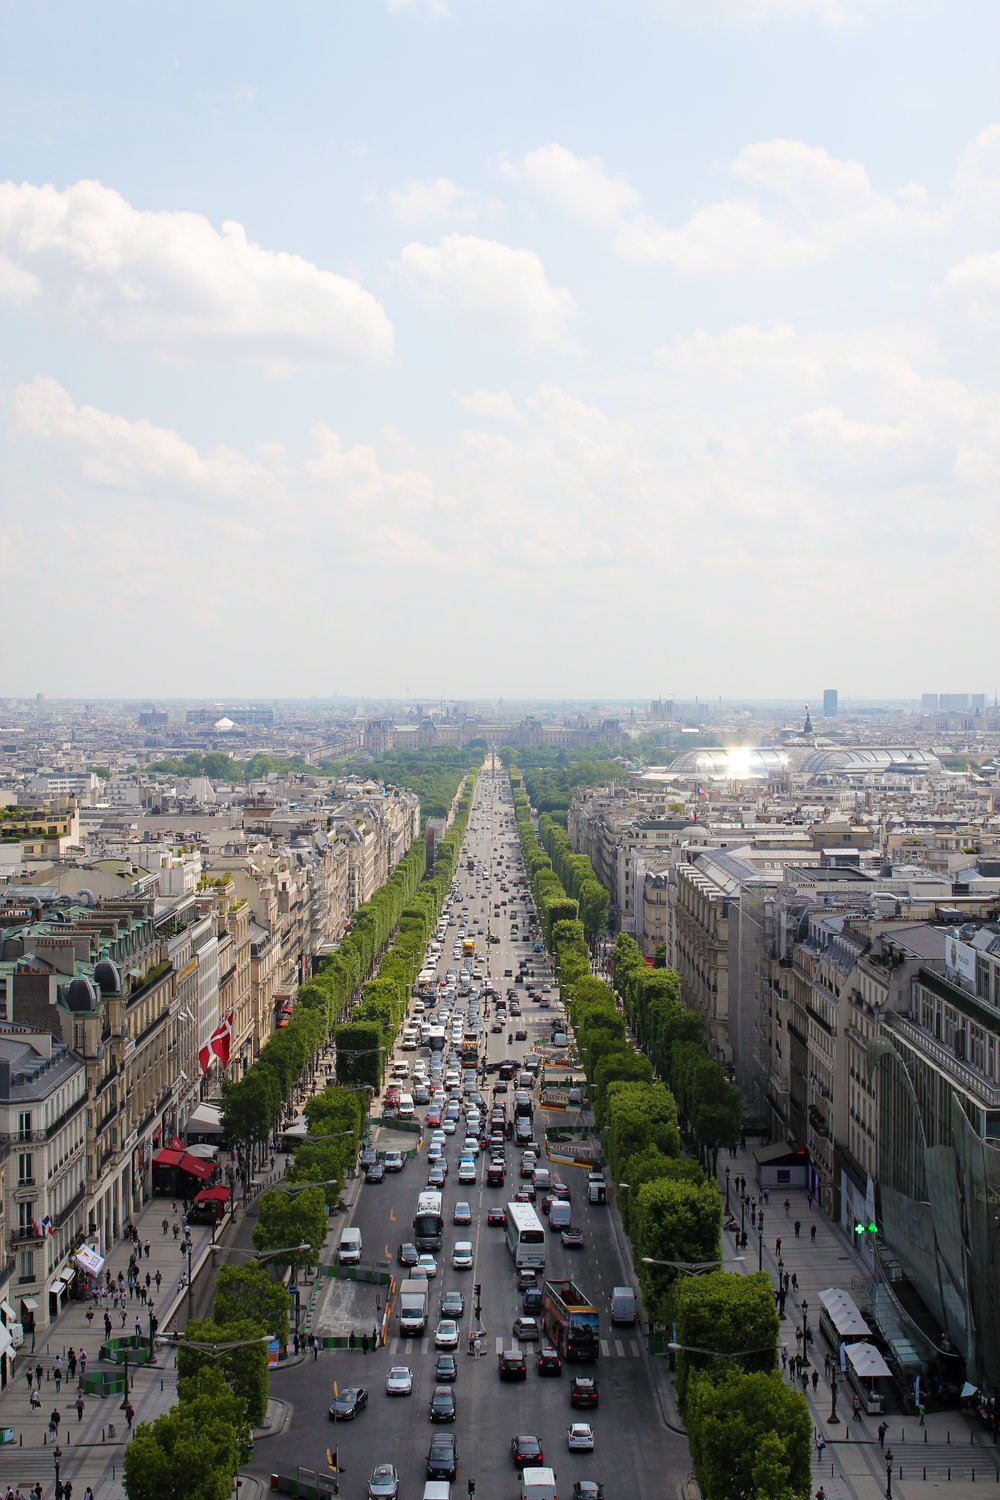 view down the Champs Elysees